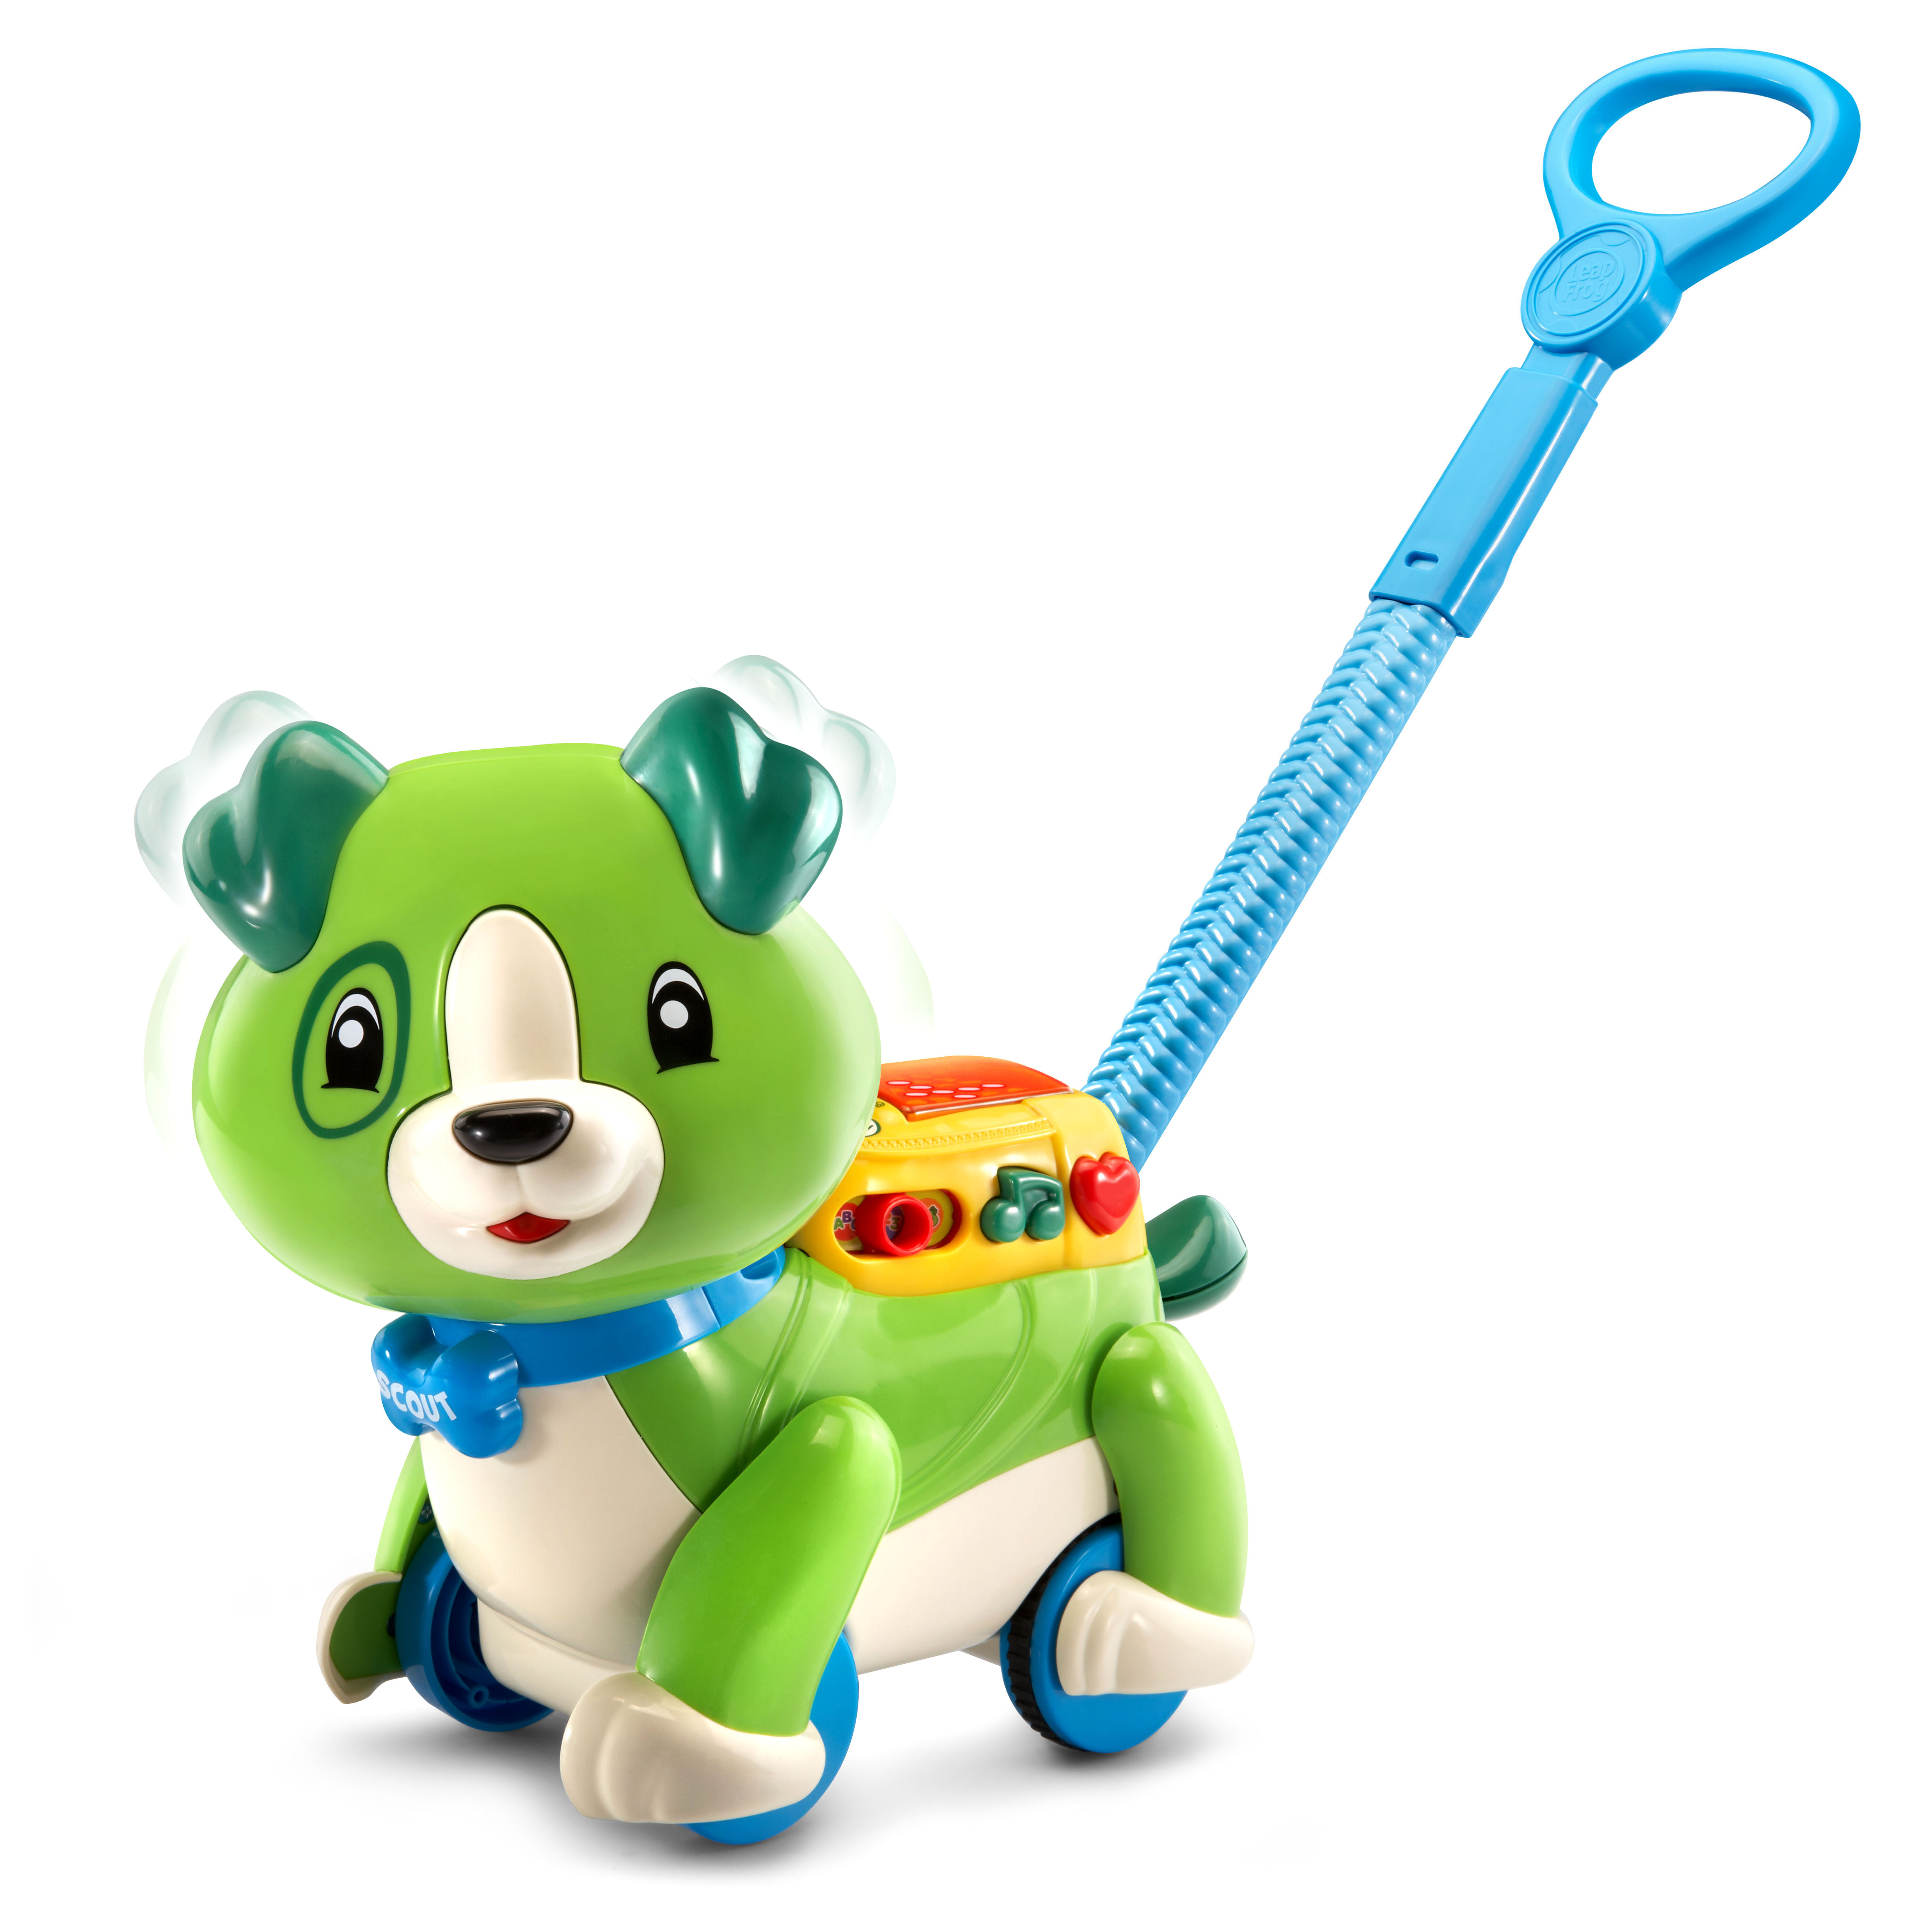 LeapFrog Step & Learn Scout by LeapFrog